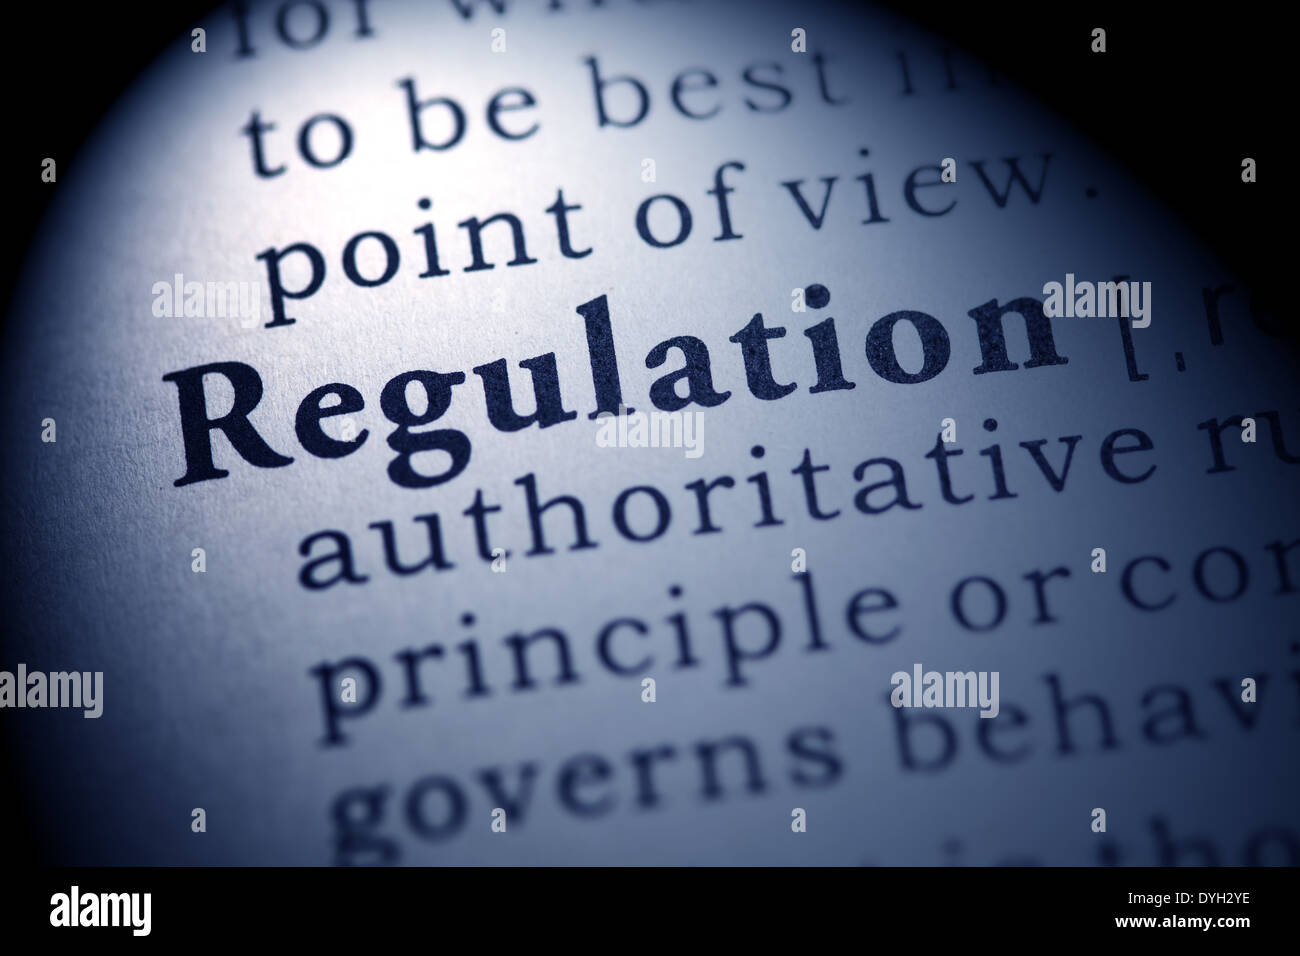 Fake Dictionary, Dictionary definition of the word regulation. - Stock Image